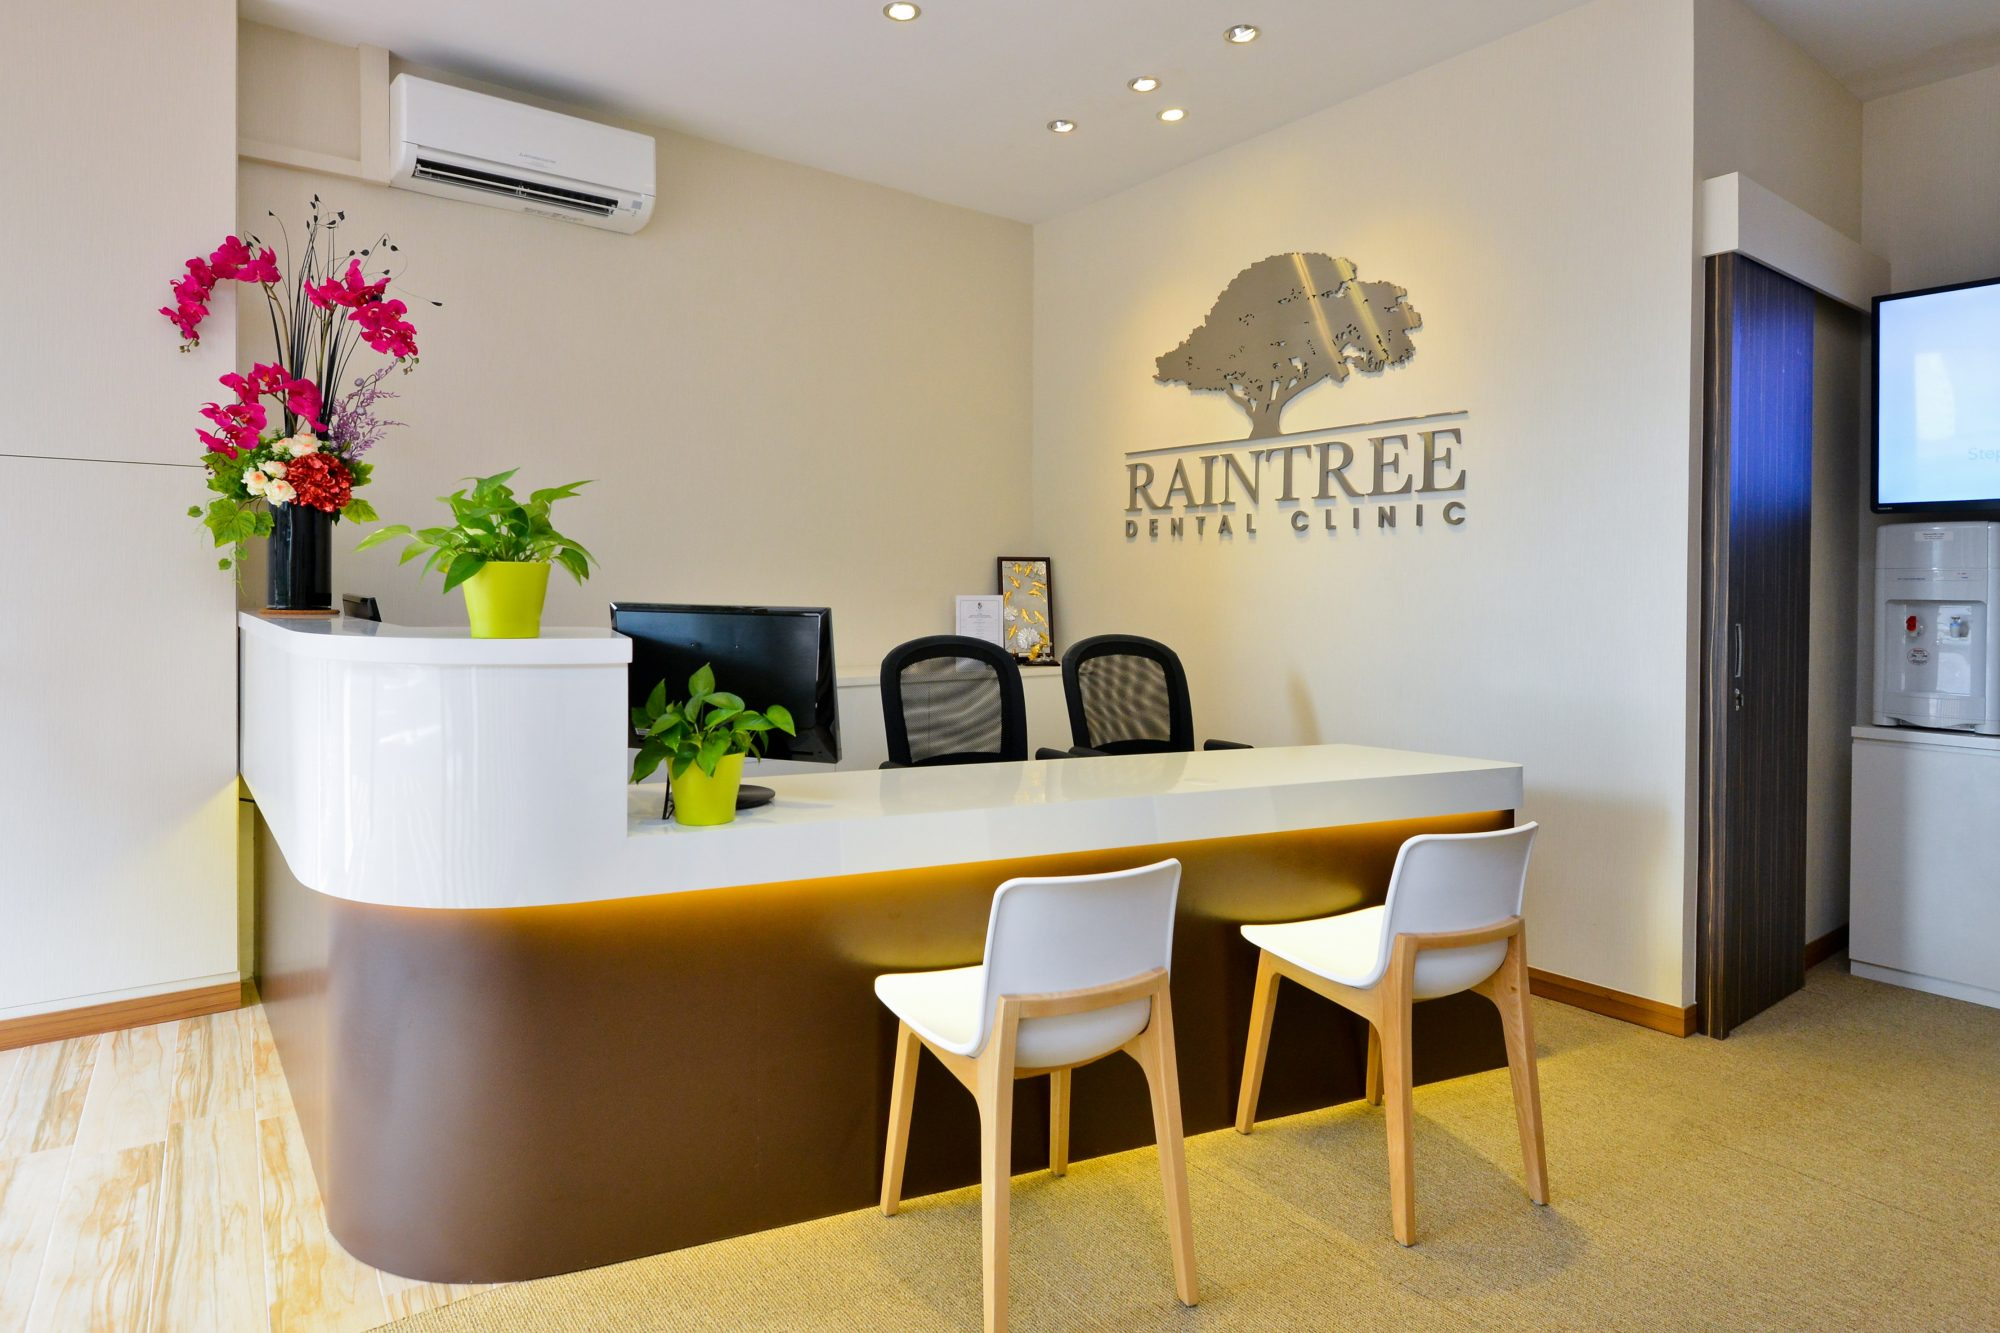 Raintree Dental Clinic